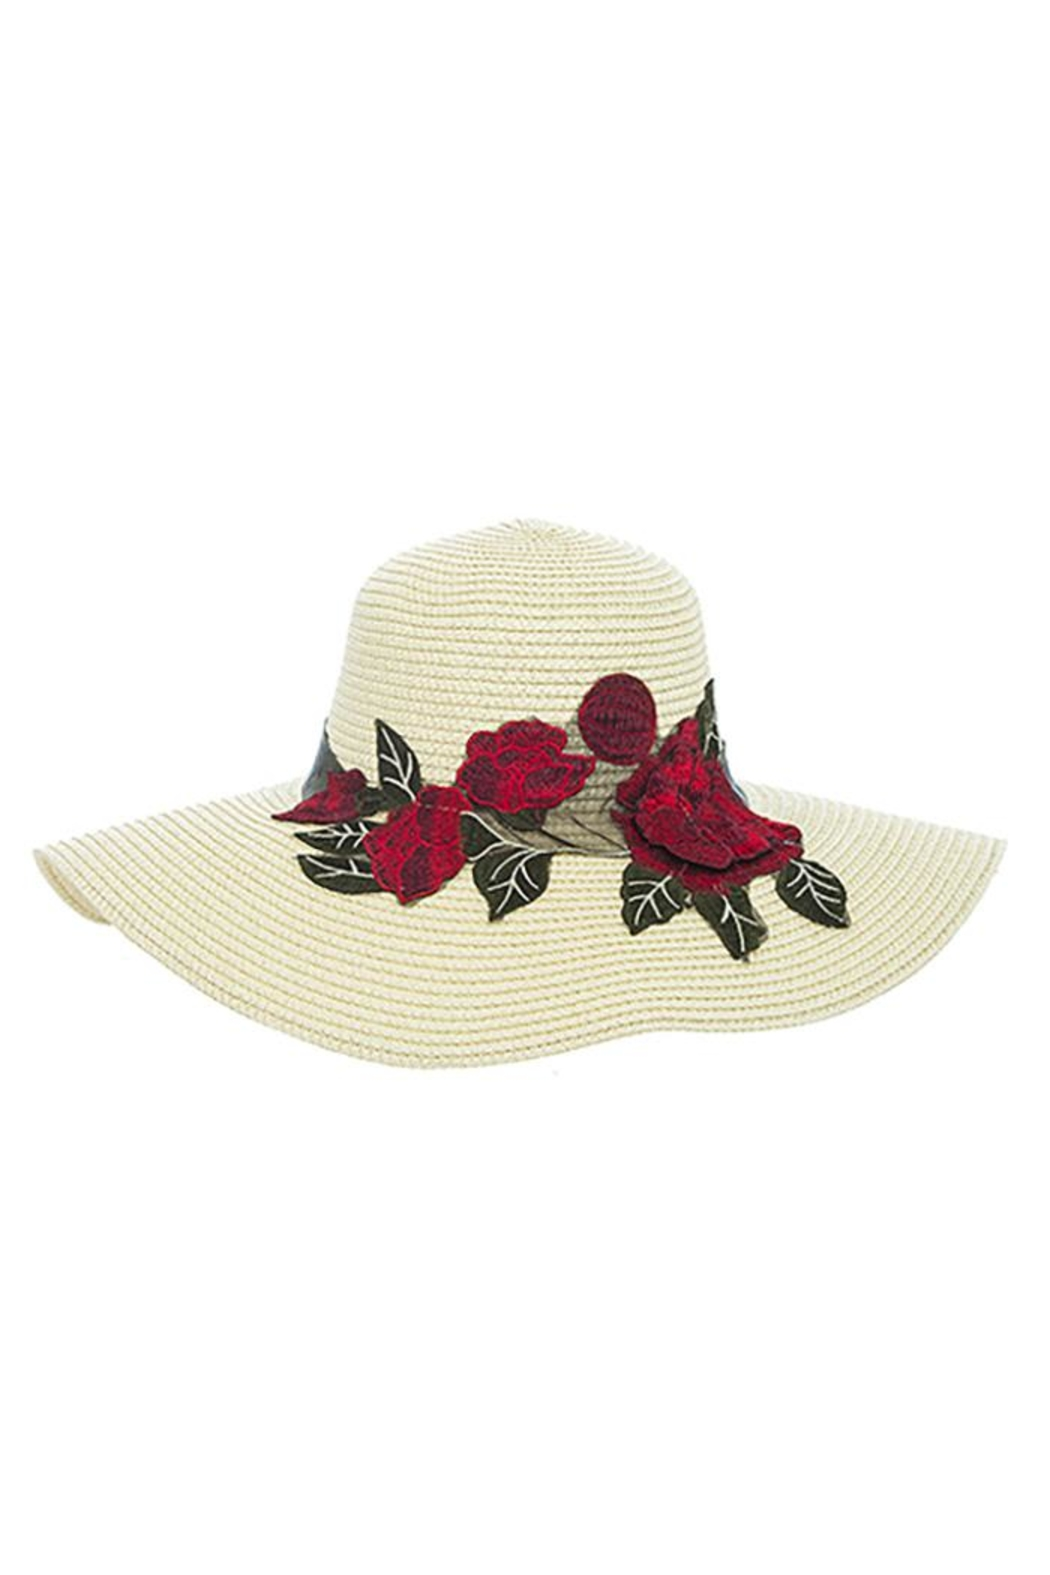 Nadya's Closet Rose Patched Floppy-Hat - Front Full Image